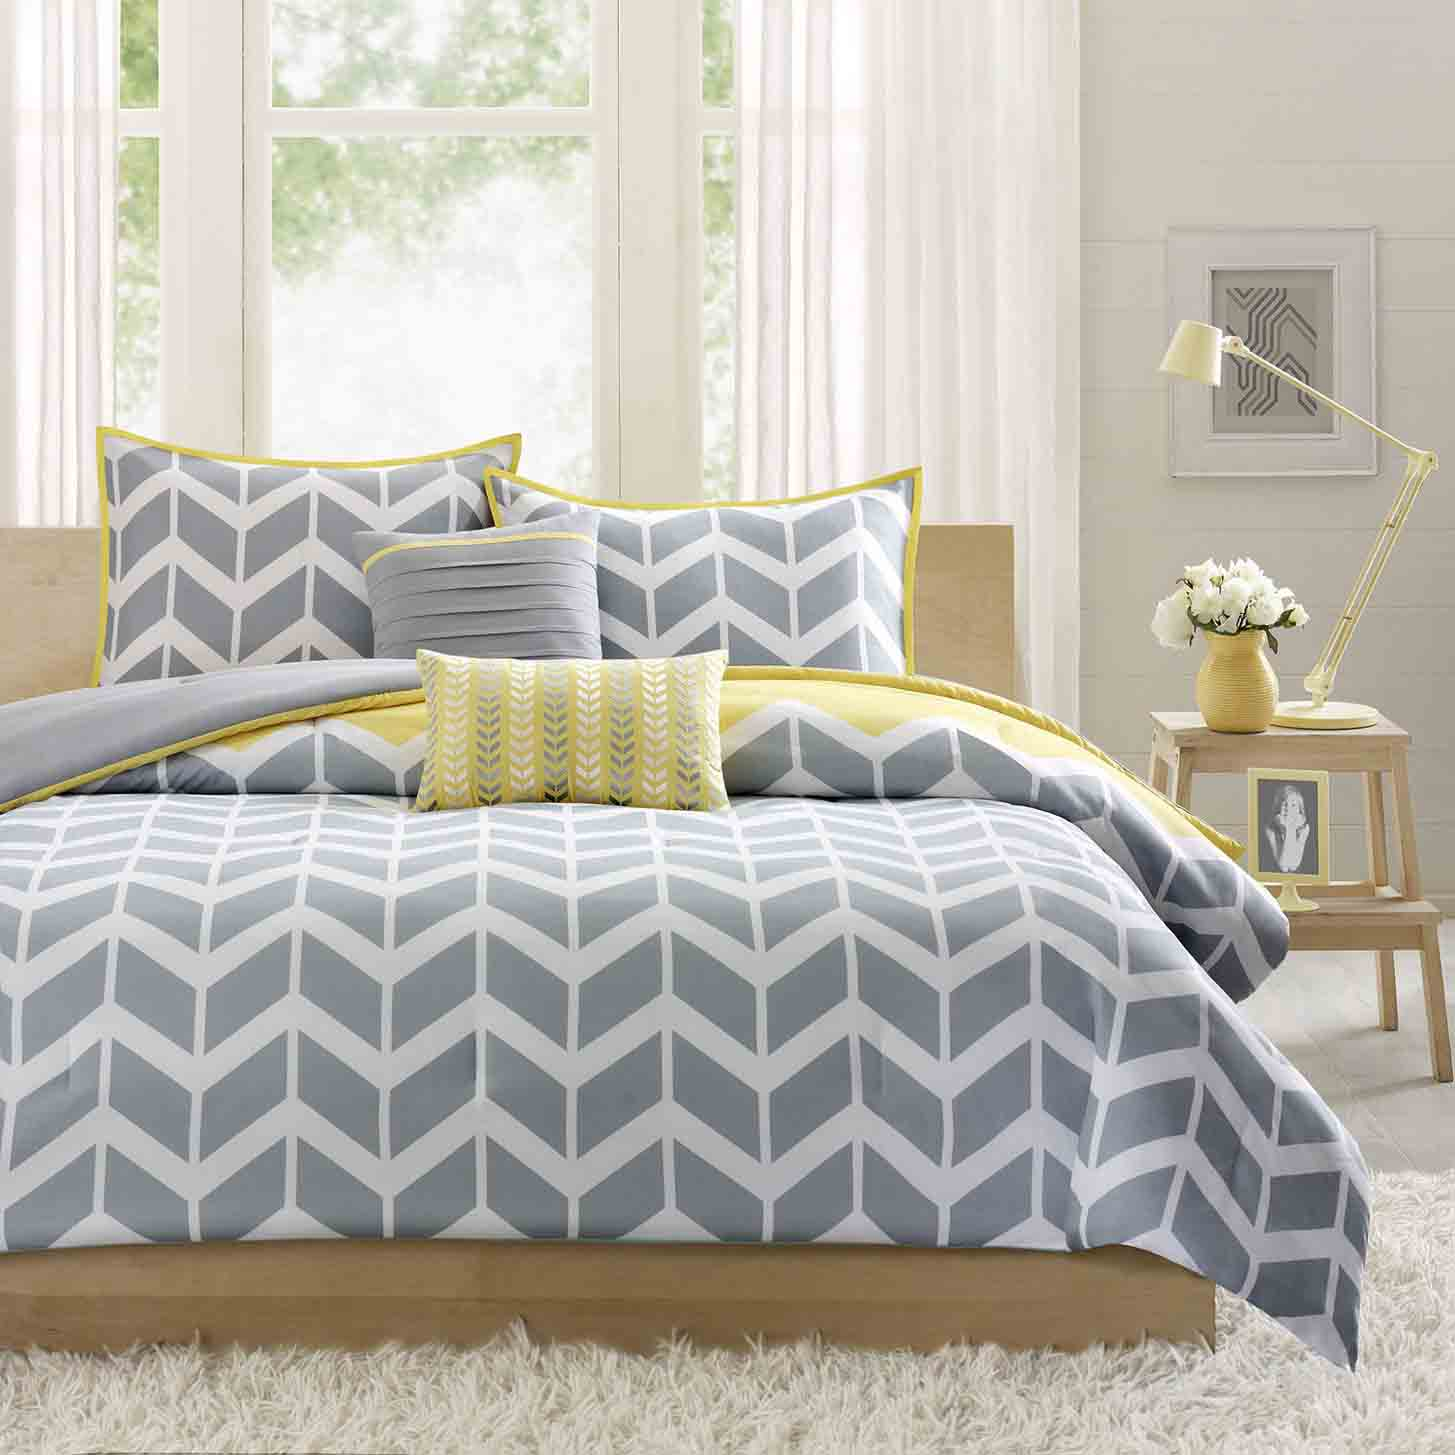 cheerful-gray-and-yellow-bedroom